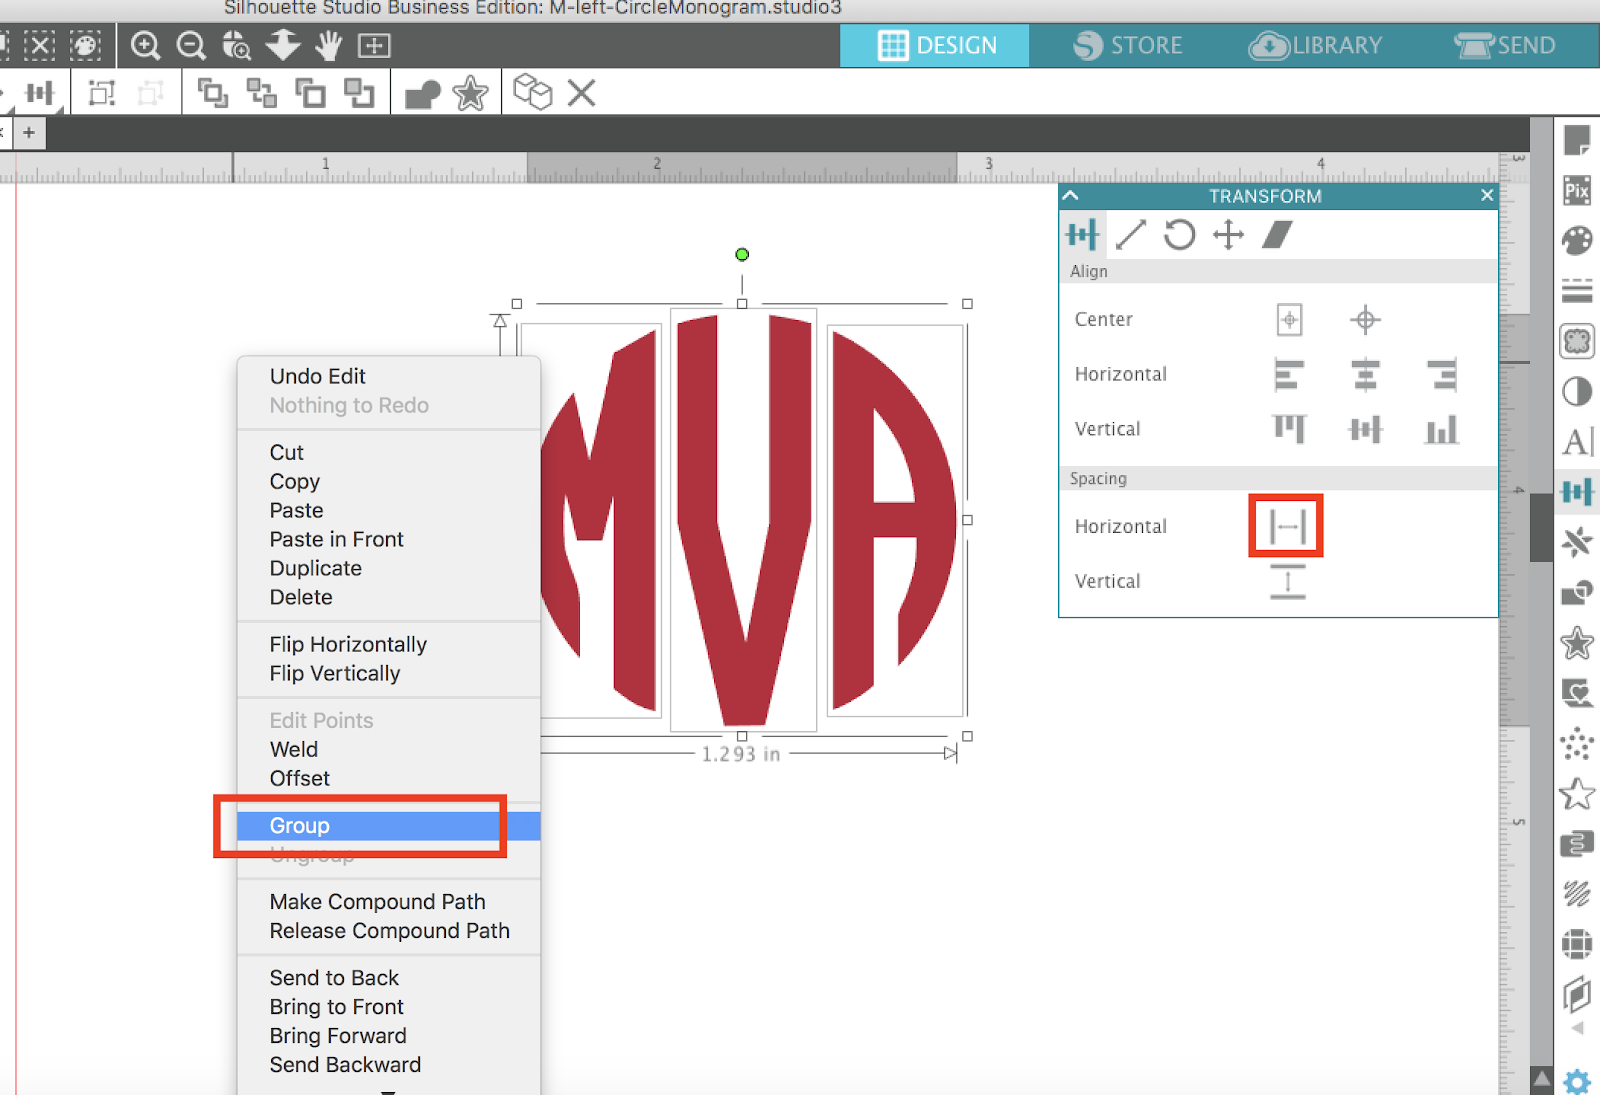 How to Use SVG Alphabet Sets in Silhouette Studio (Monogram